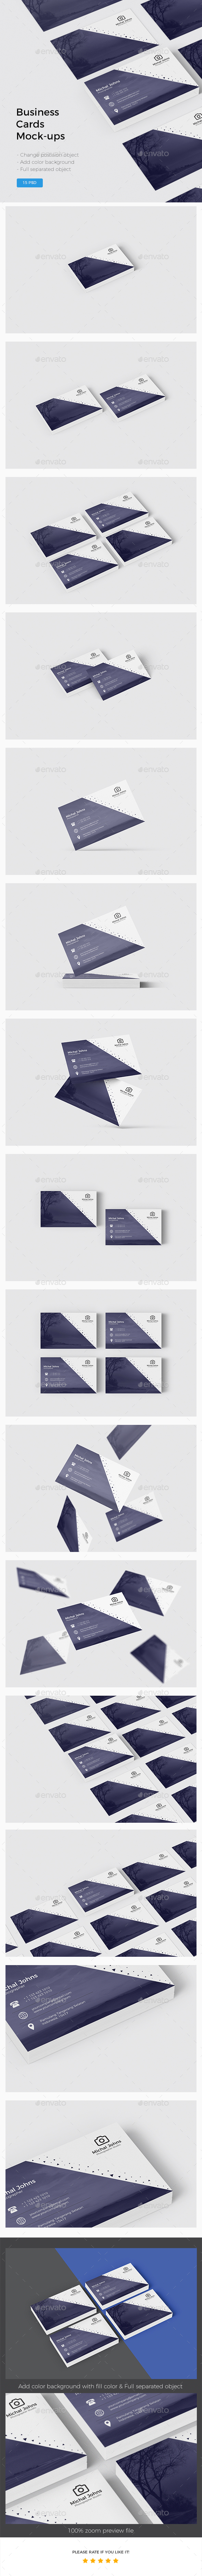 GraphicRiver Business Cards Mockup 21145819